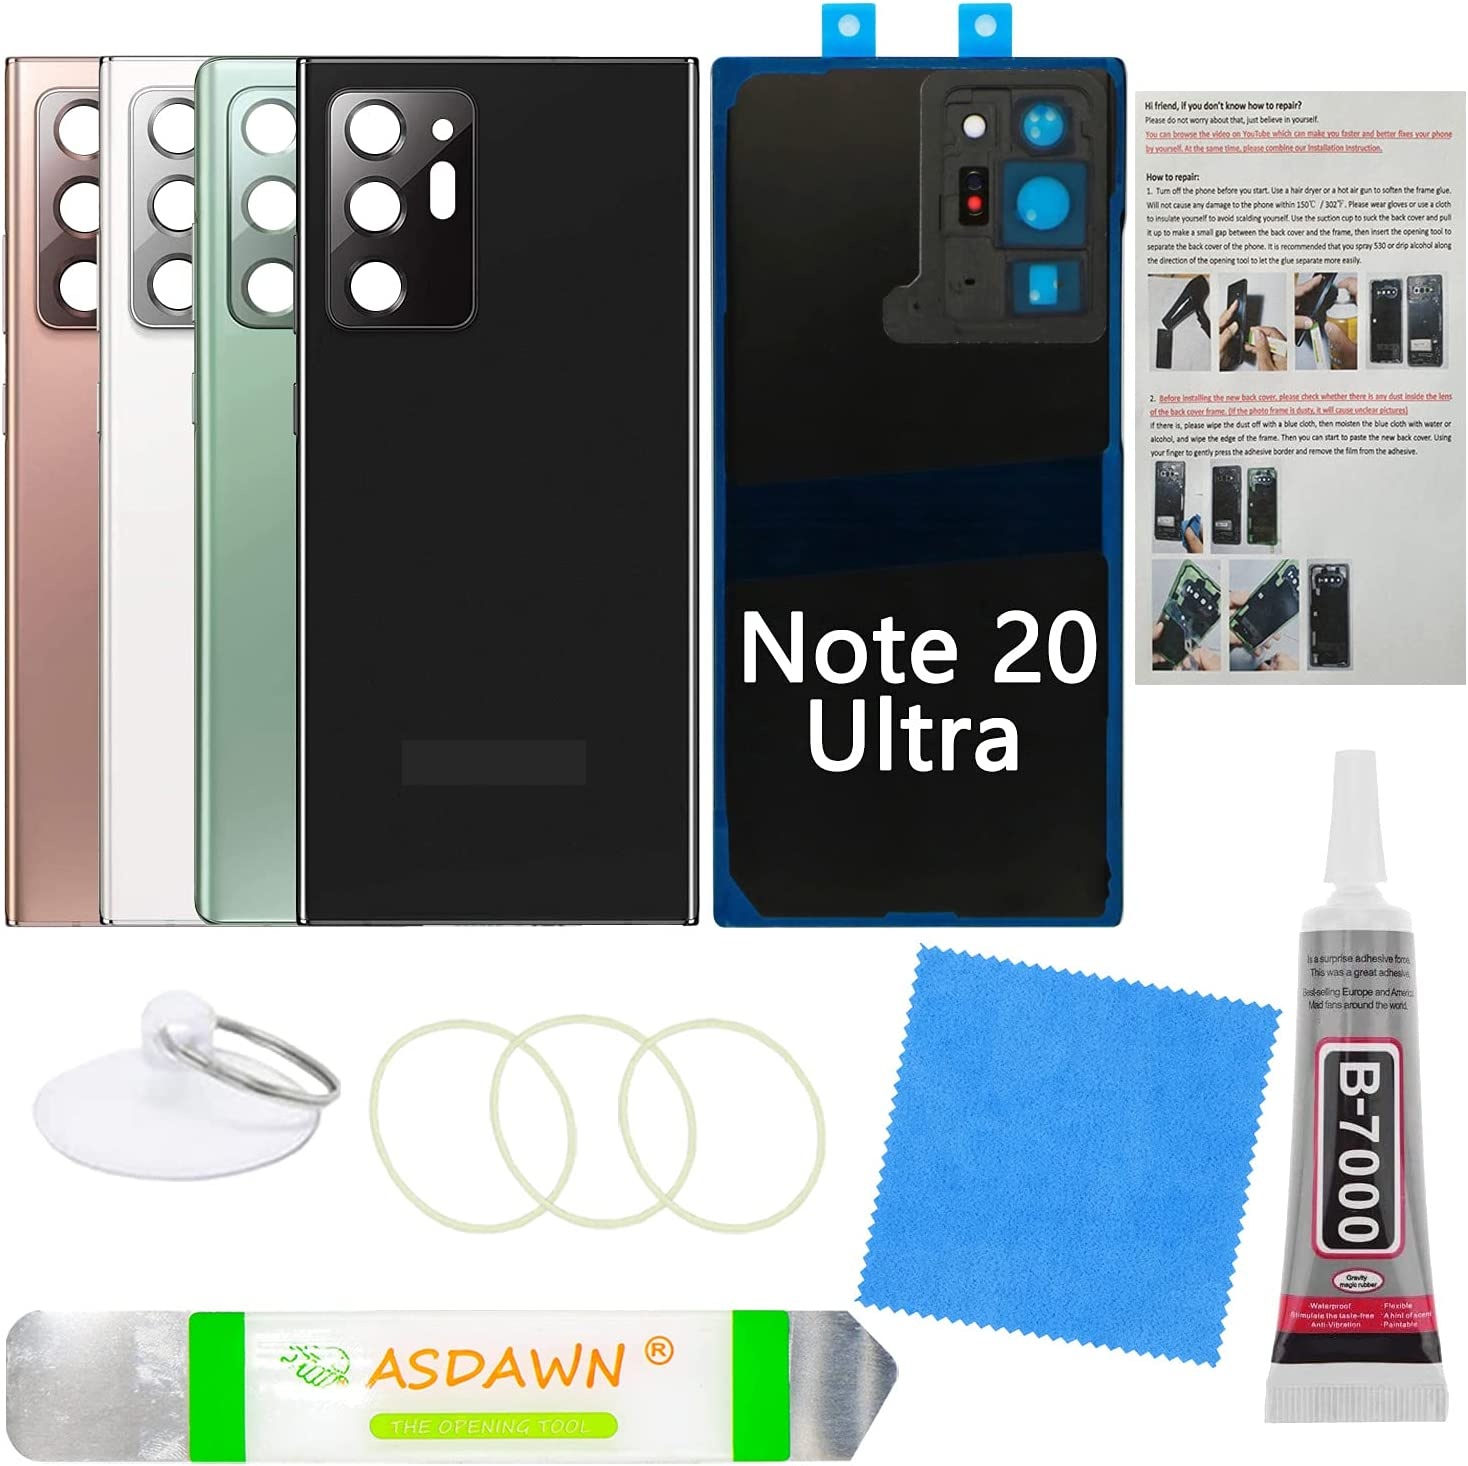 Galaxy Note 20 Ultra Back Cover Glass Replacement w/Pre-Installed Camera Lens+All The Adhesive+Installation Manual+Repair Tool Kit for Samsung Galaxy Note 20 Ultra SM-N985 All Carriers (Mystic Black)